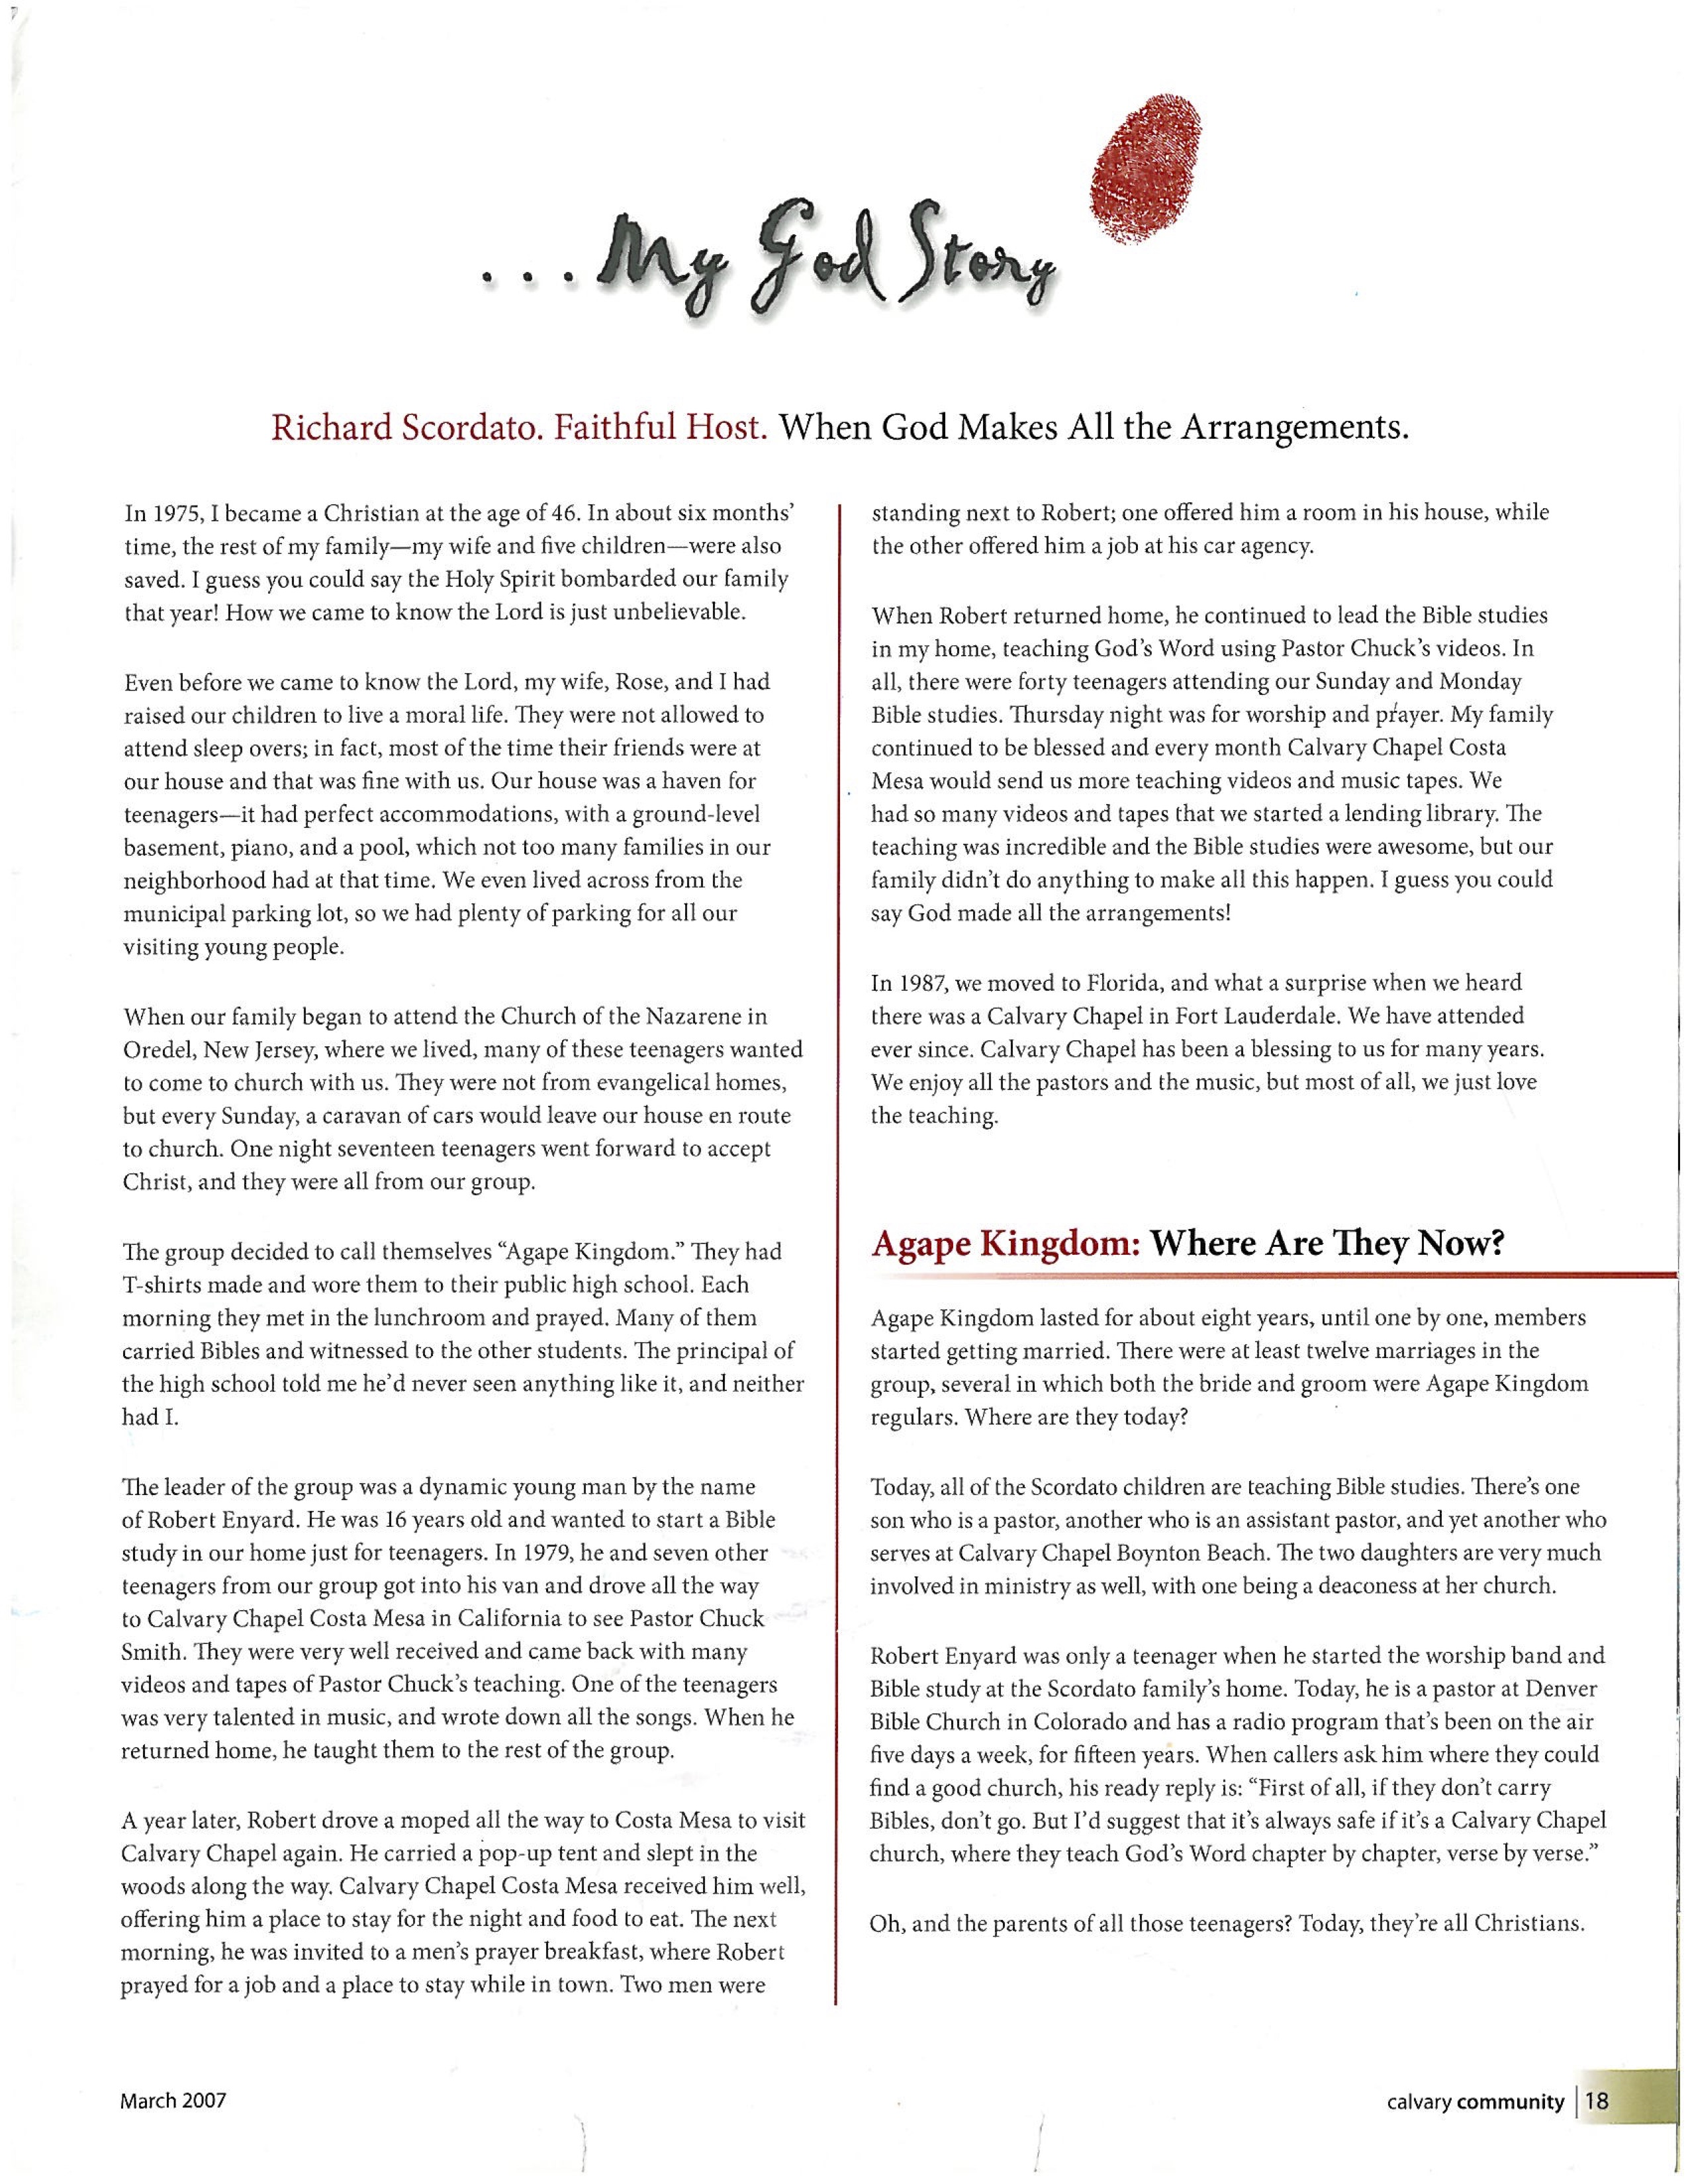 Ft. Lauderdale Florida Calvary ChapelMagazine back page about Bob's ministry as a teenager